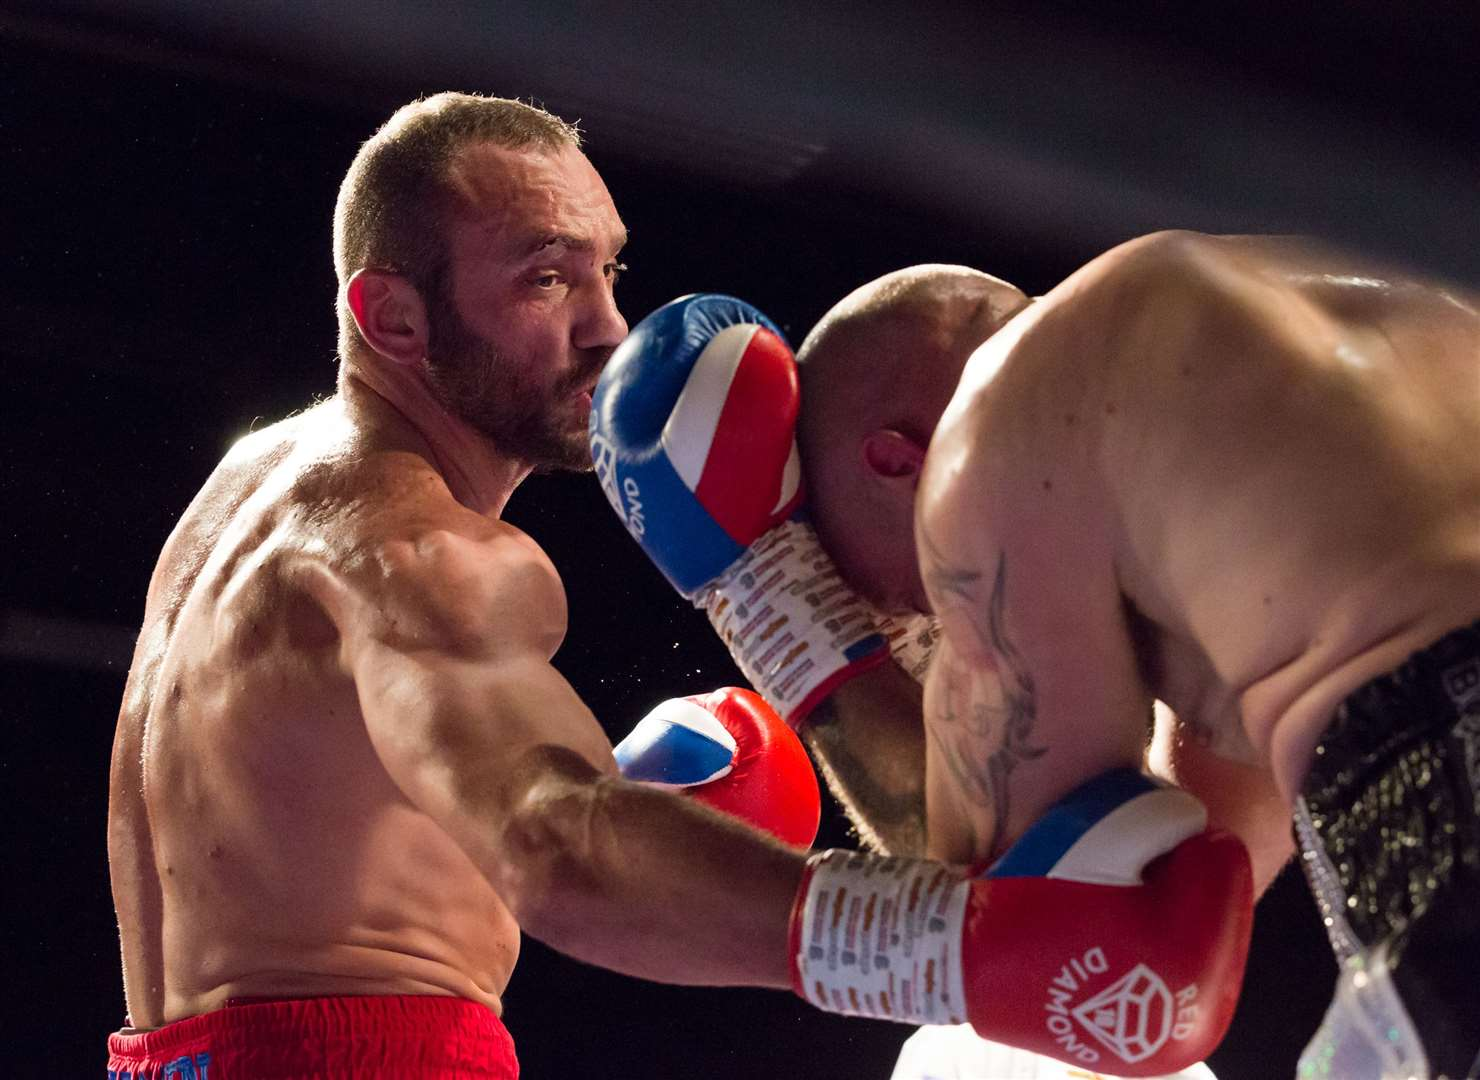 Paul Brown beat Andy Bishop on points in February at Mote Park Leisure Centre, Maidstone Picture: Countrywide Photographic